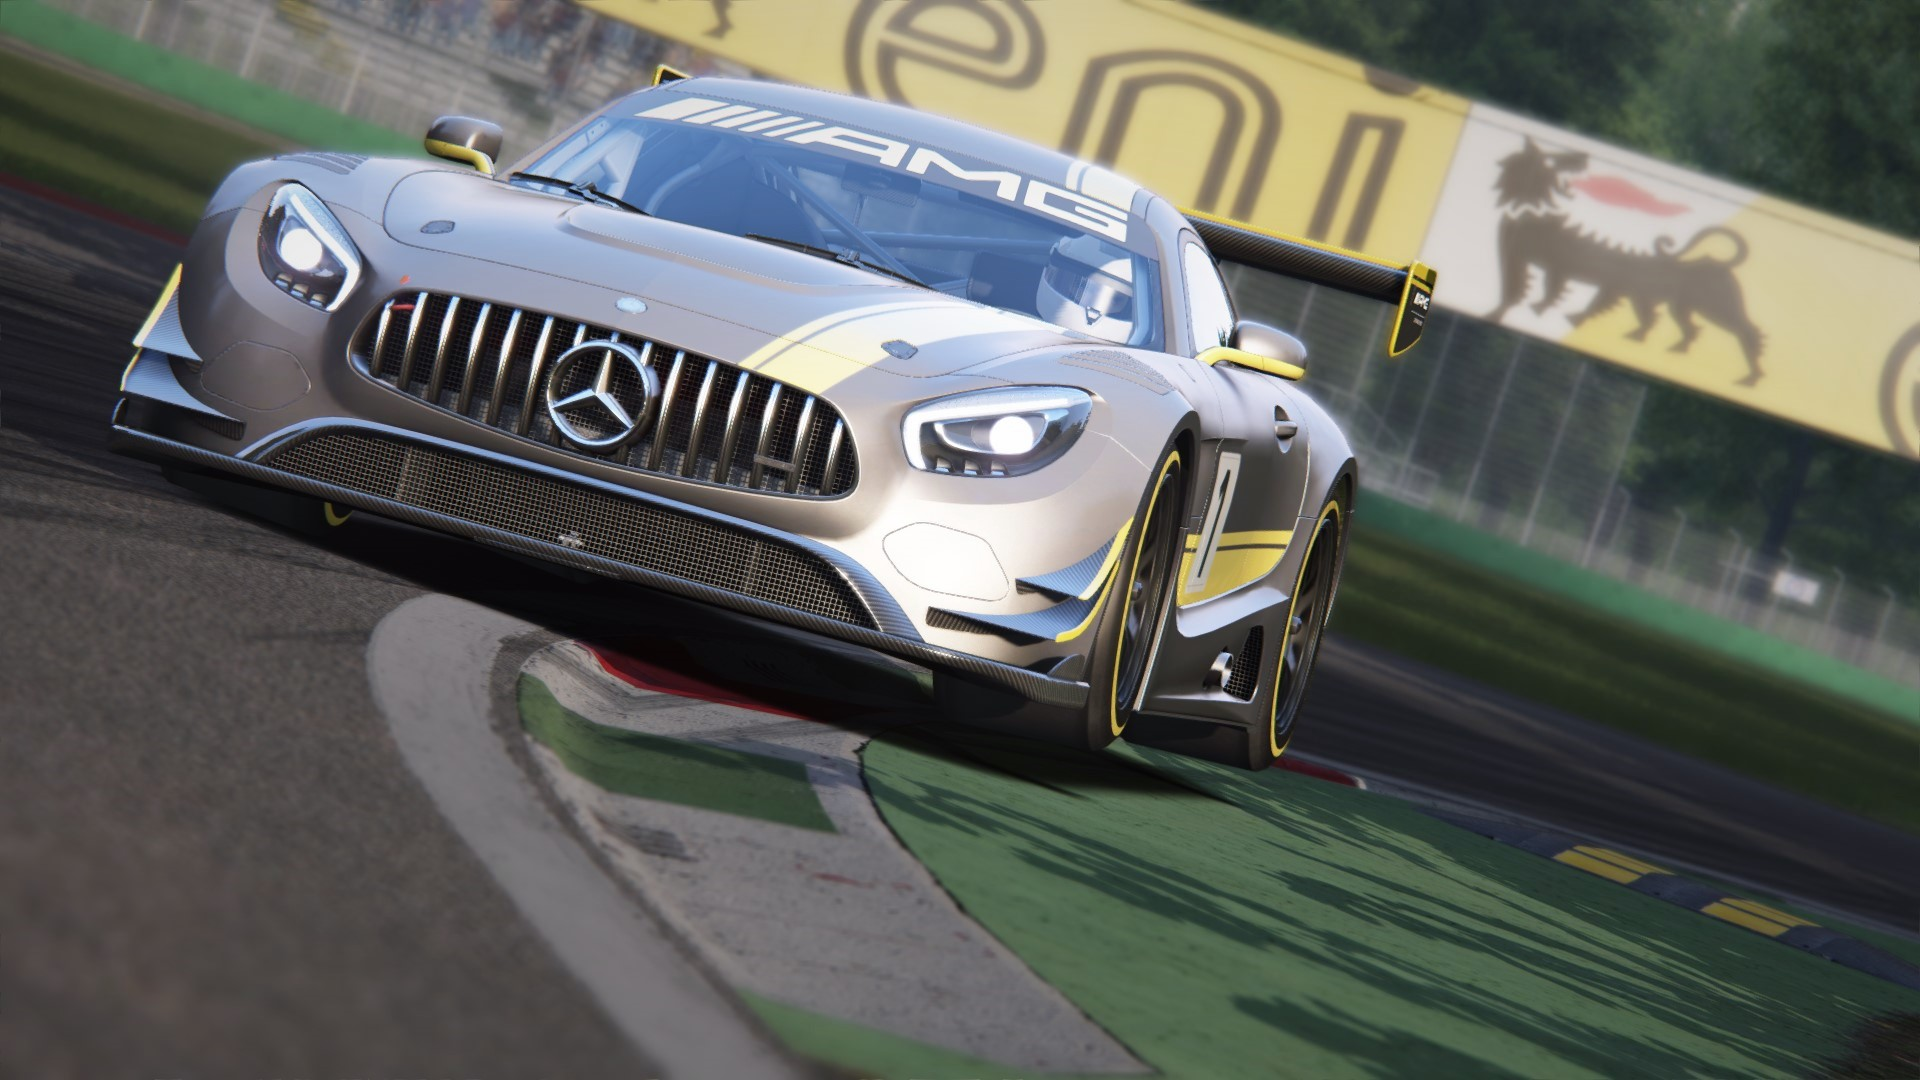 Screenshot_ks_mercedes_amg_gt3_monza_1-4-116-14-45-41.jpg